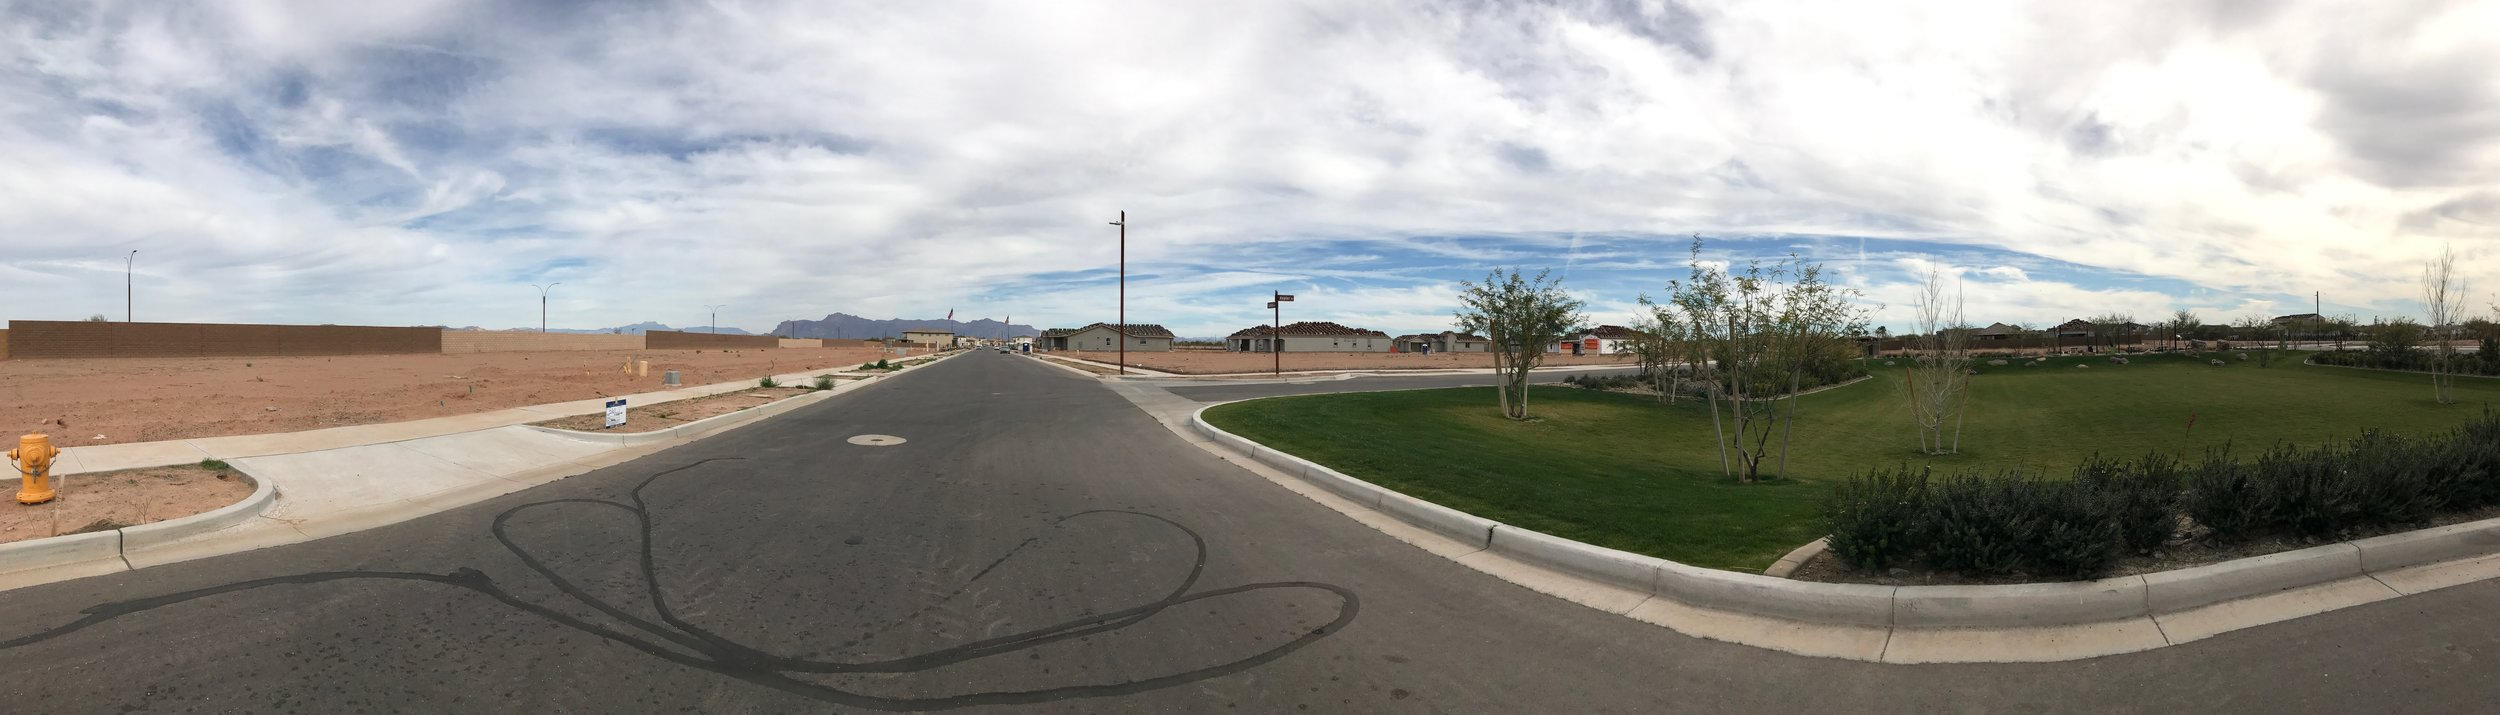 Our lot is off to the left with a nice park across the street! This section will be all single story homes.